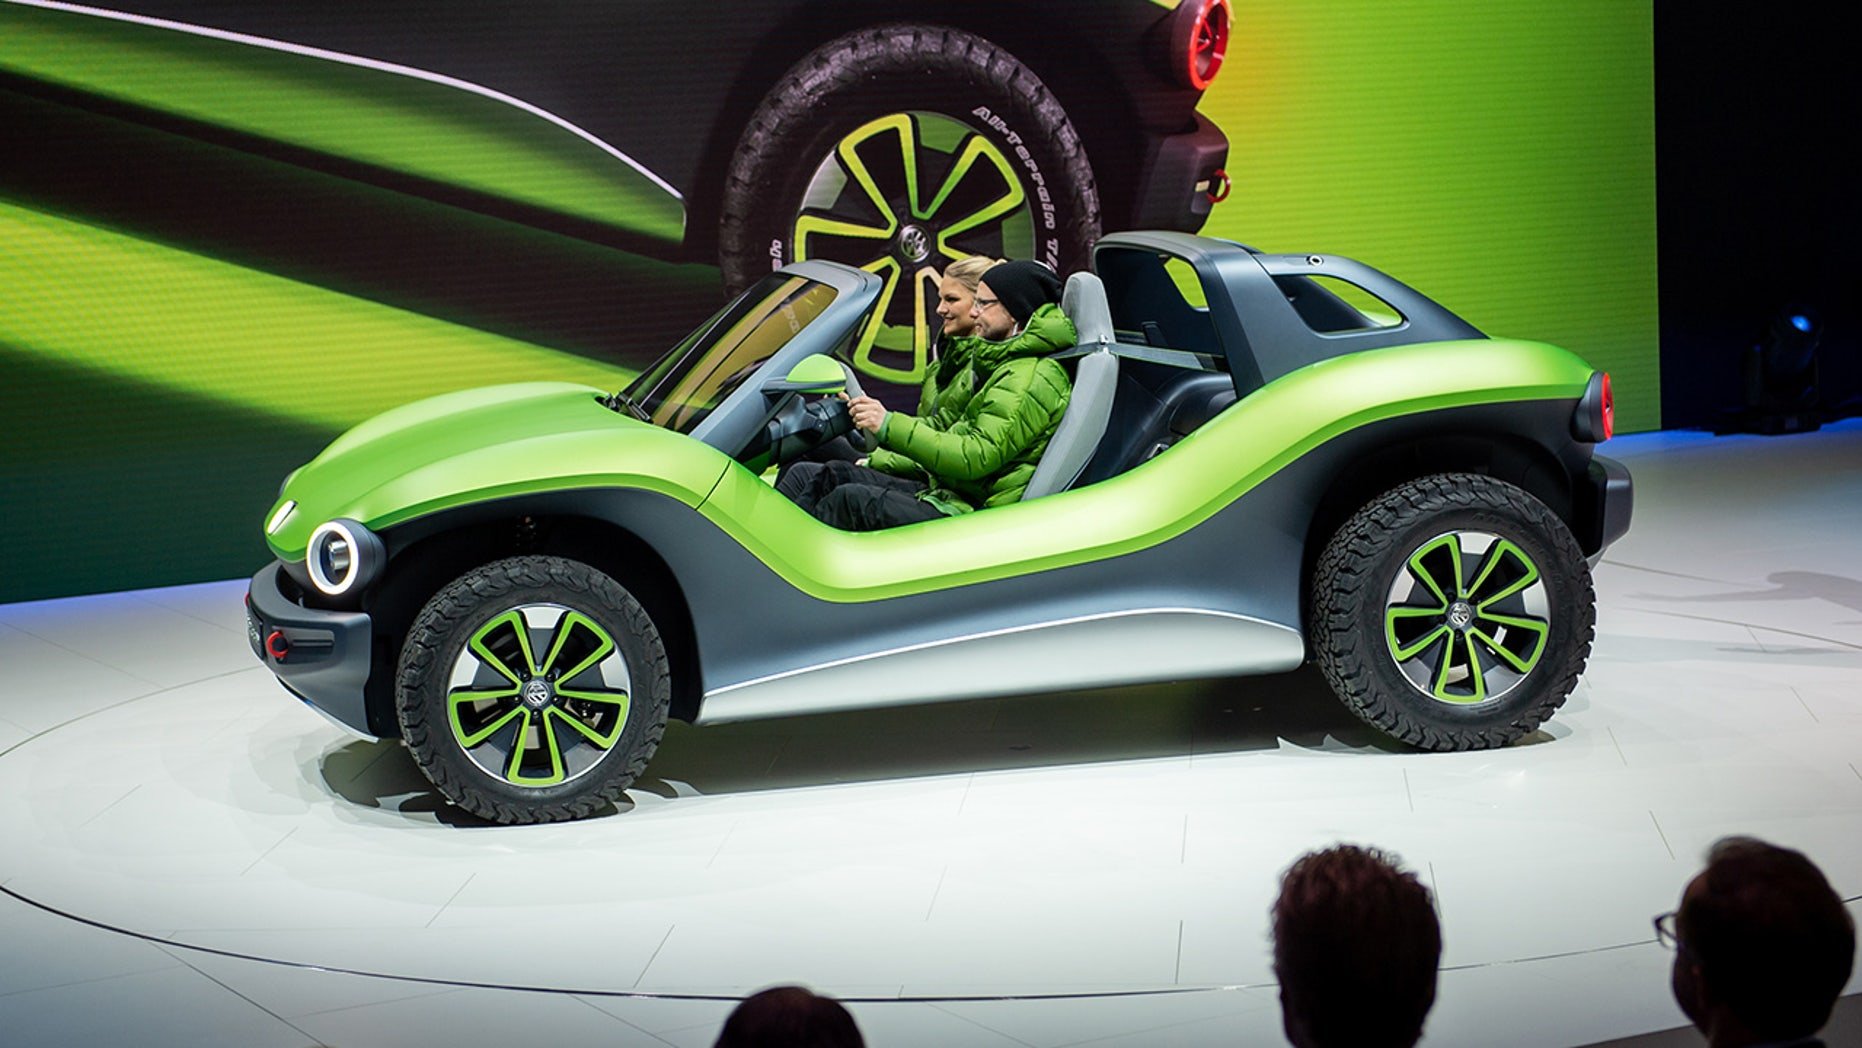 Volkswagen Revives The Classic Beach Buggy As Futuristic Electric Concept